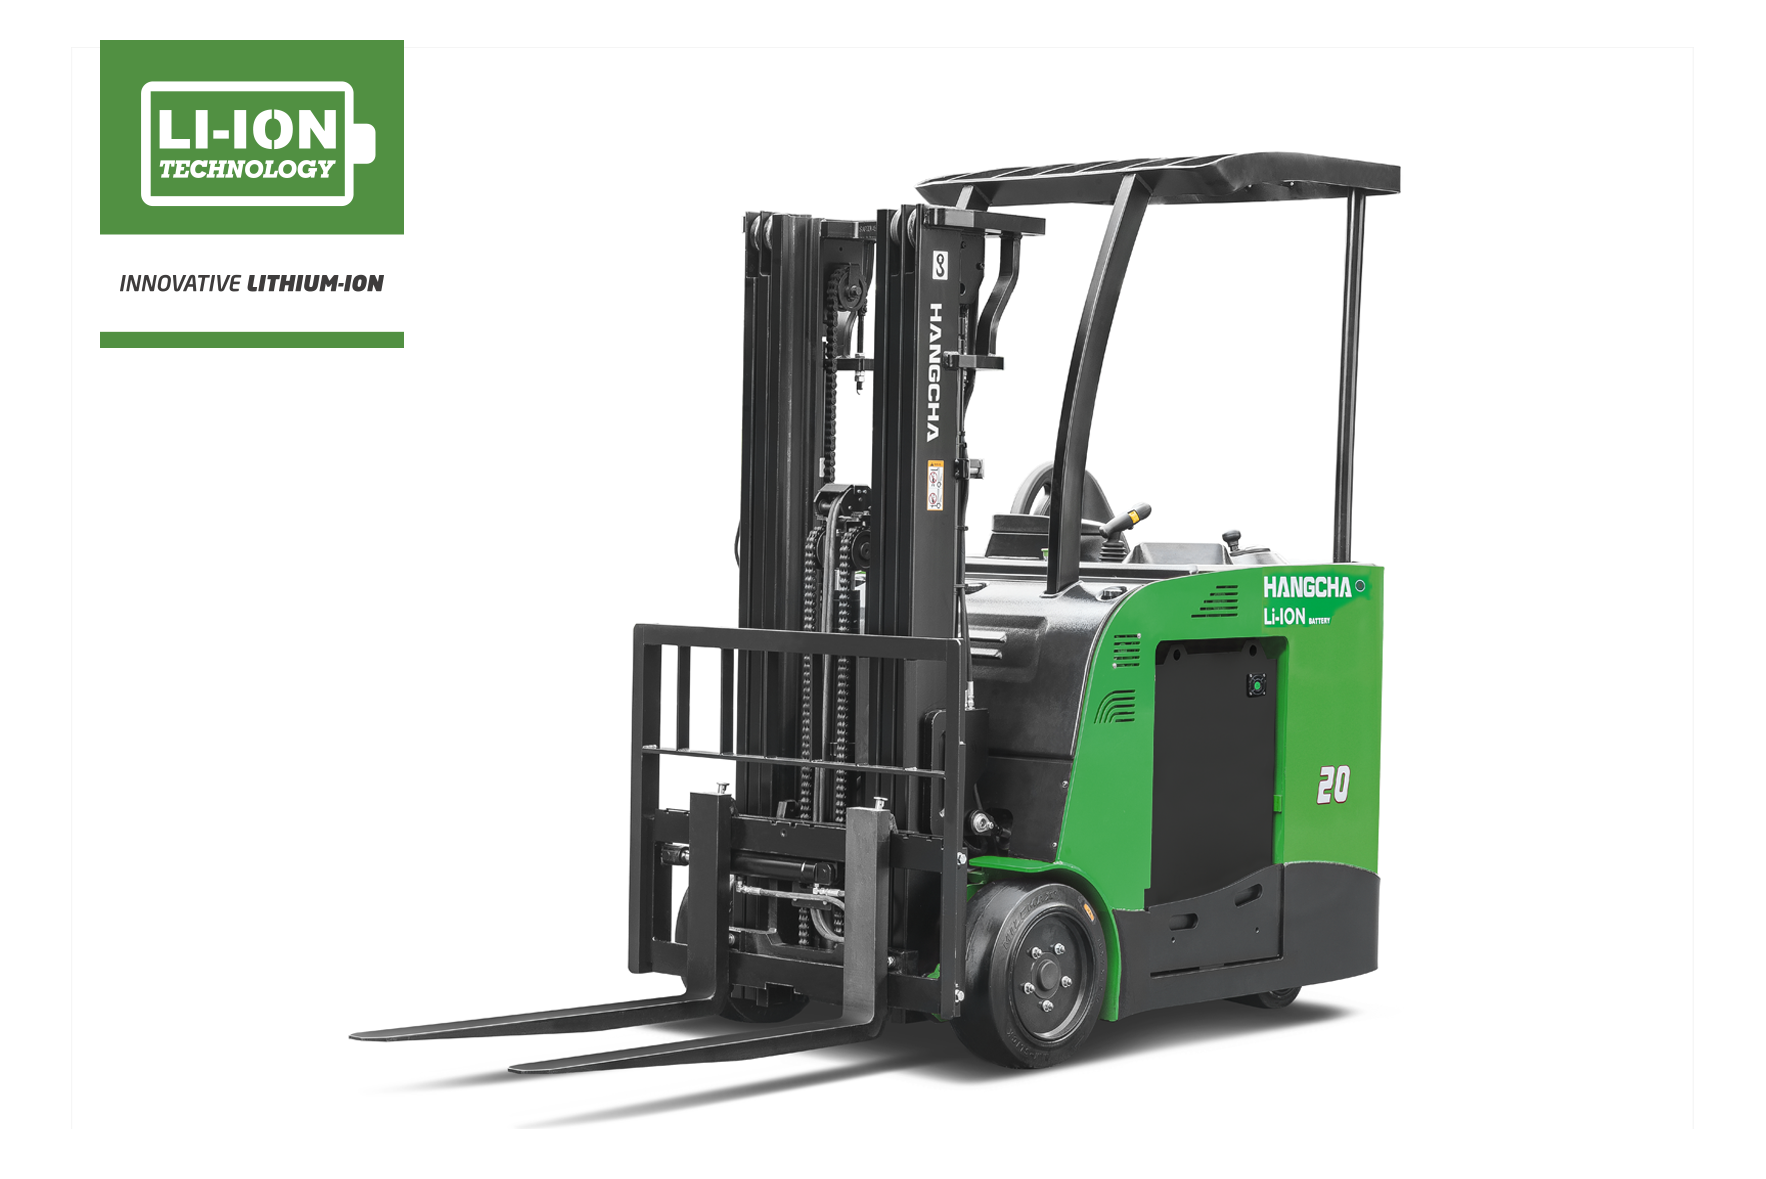 3 Wheel Electric Lithium-ion Stand-Up Counterbalanced Forklift 3,000-5,000lbs